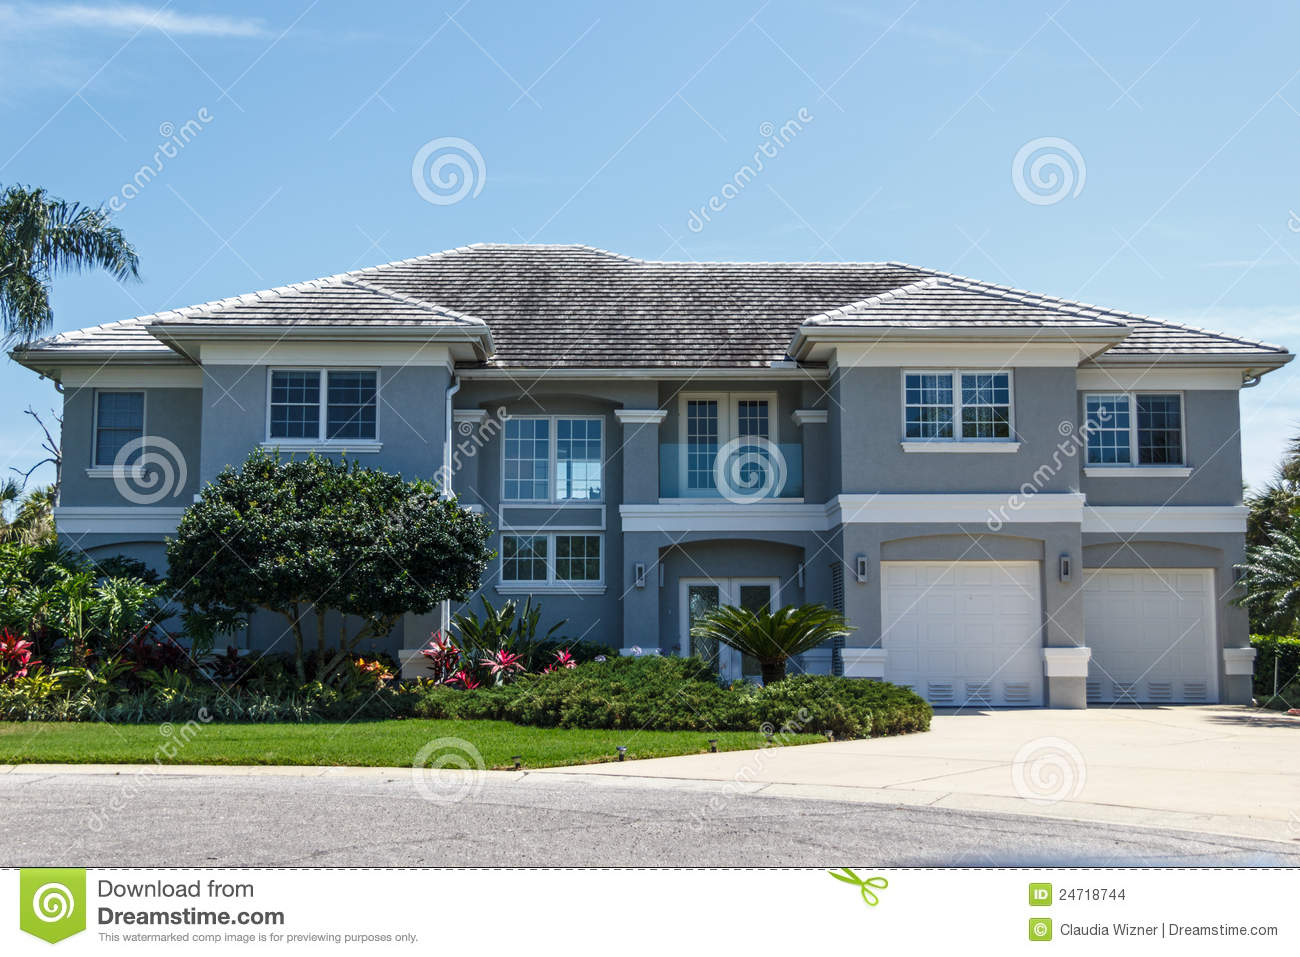 grande maison de luxe photo stock image du home luxueux